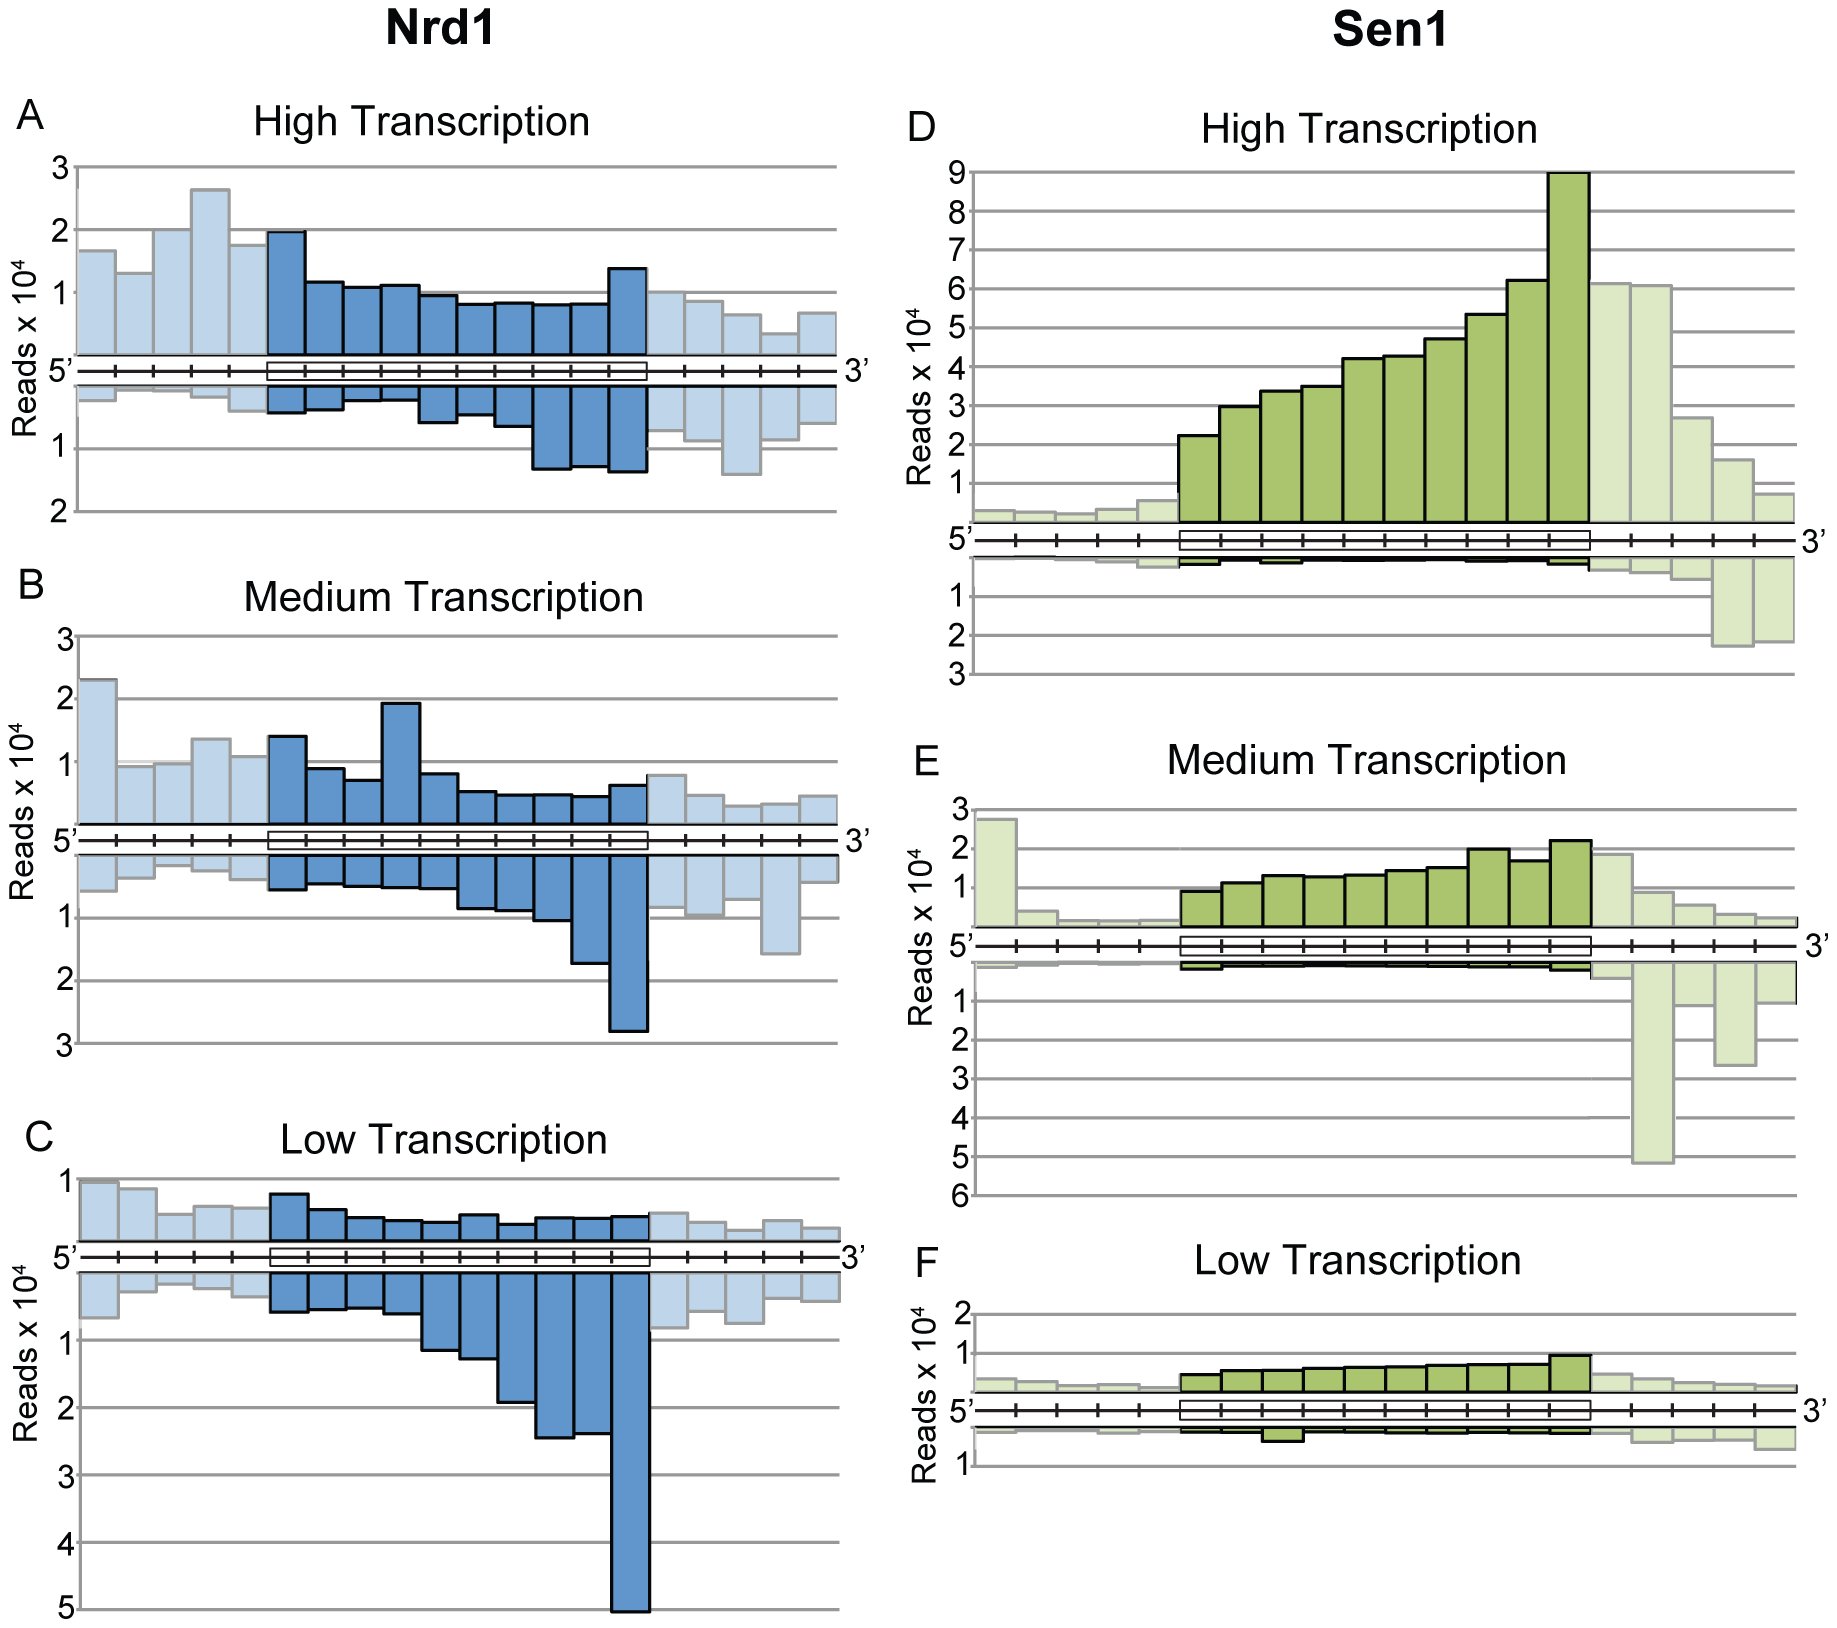 Gene-averaged positive and negative strand Nrd1 and Sen1 cross-linked reads on genes ranked by expression level.